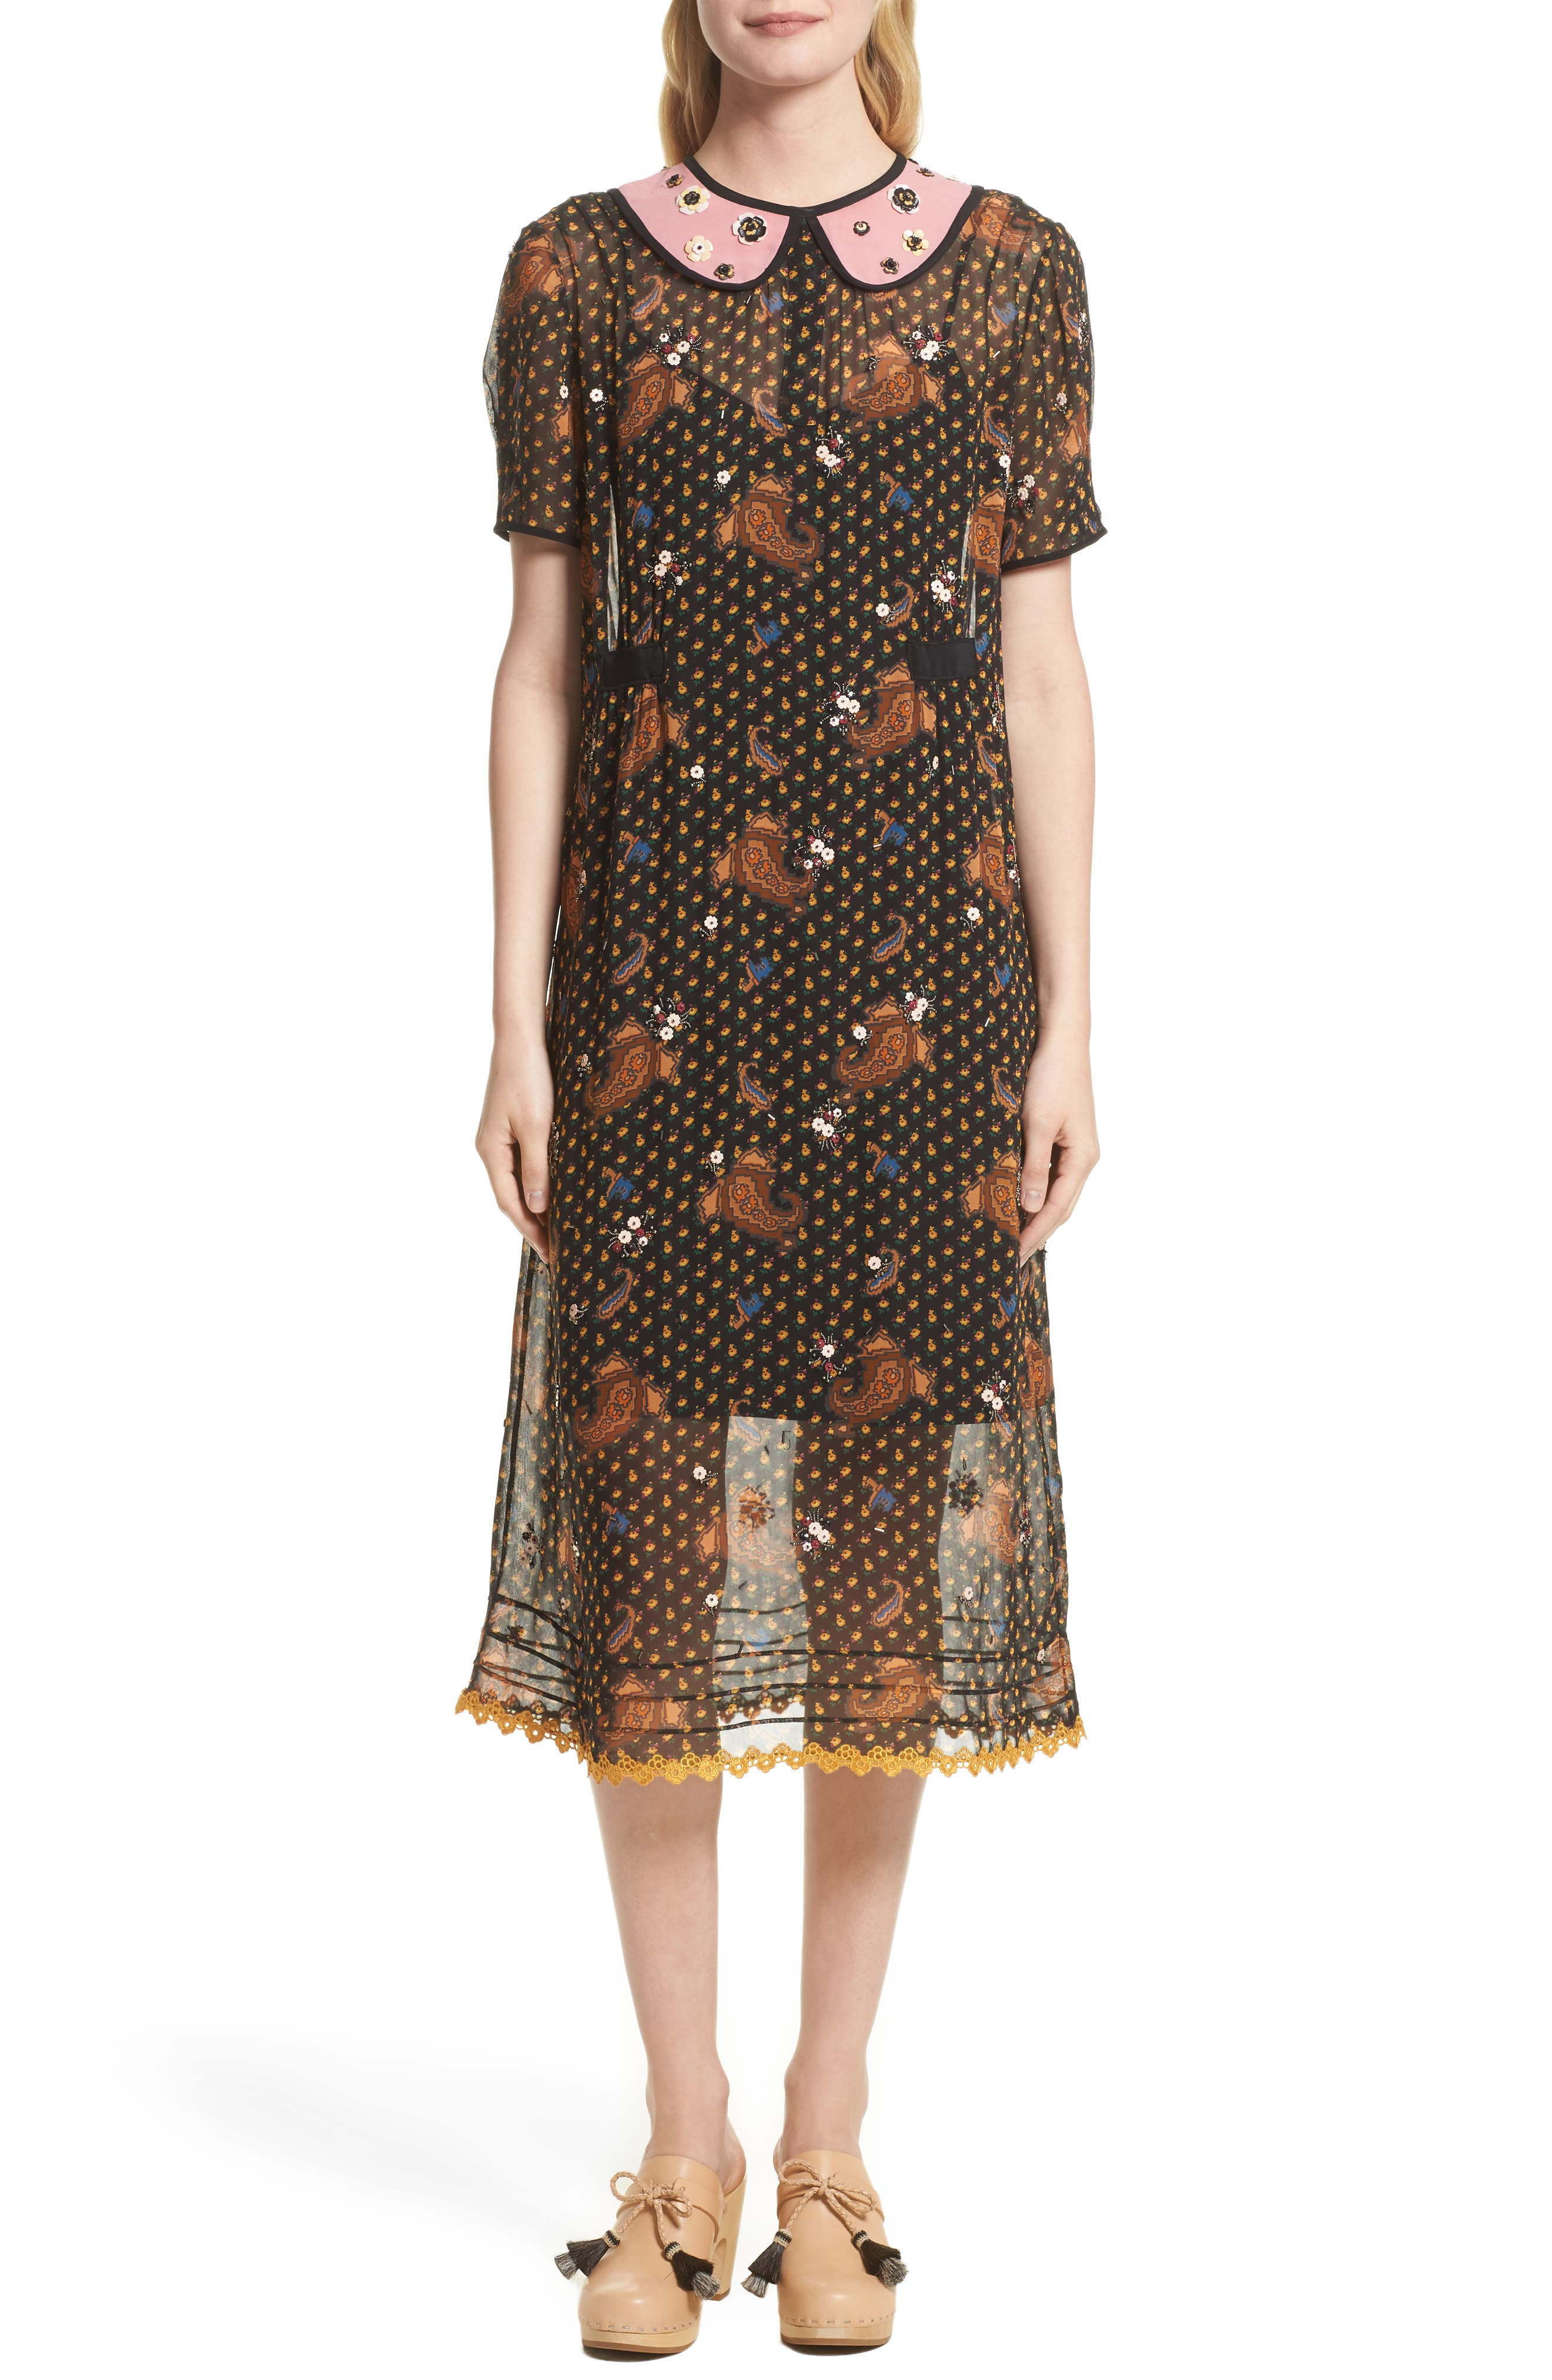 COACH 1941 Embellished Midi Dress